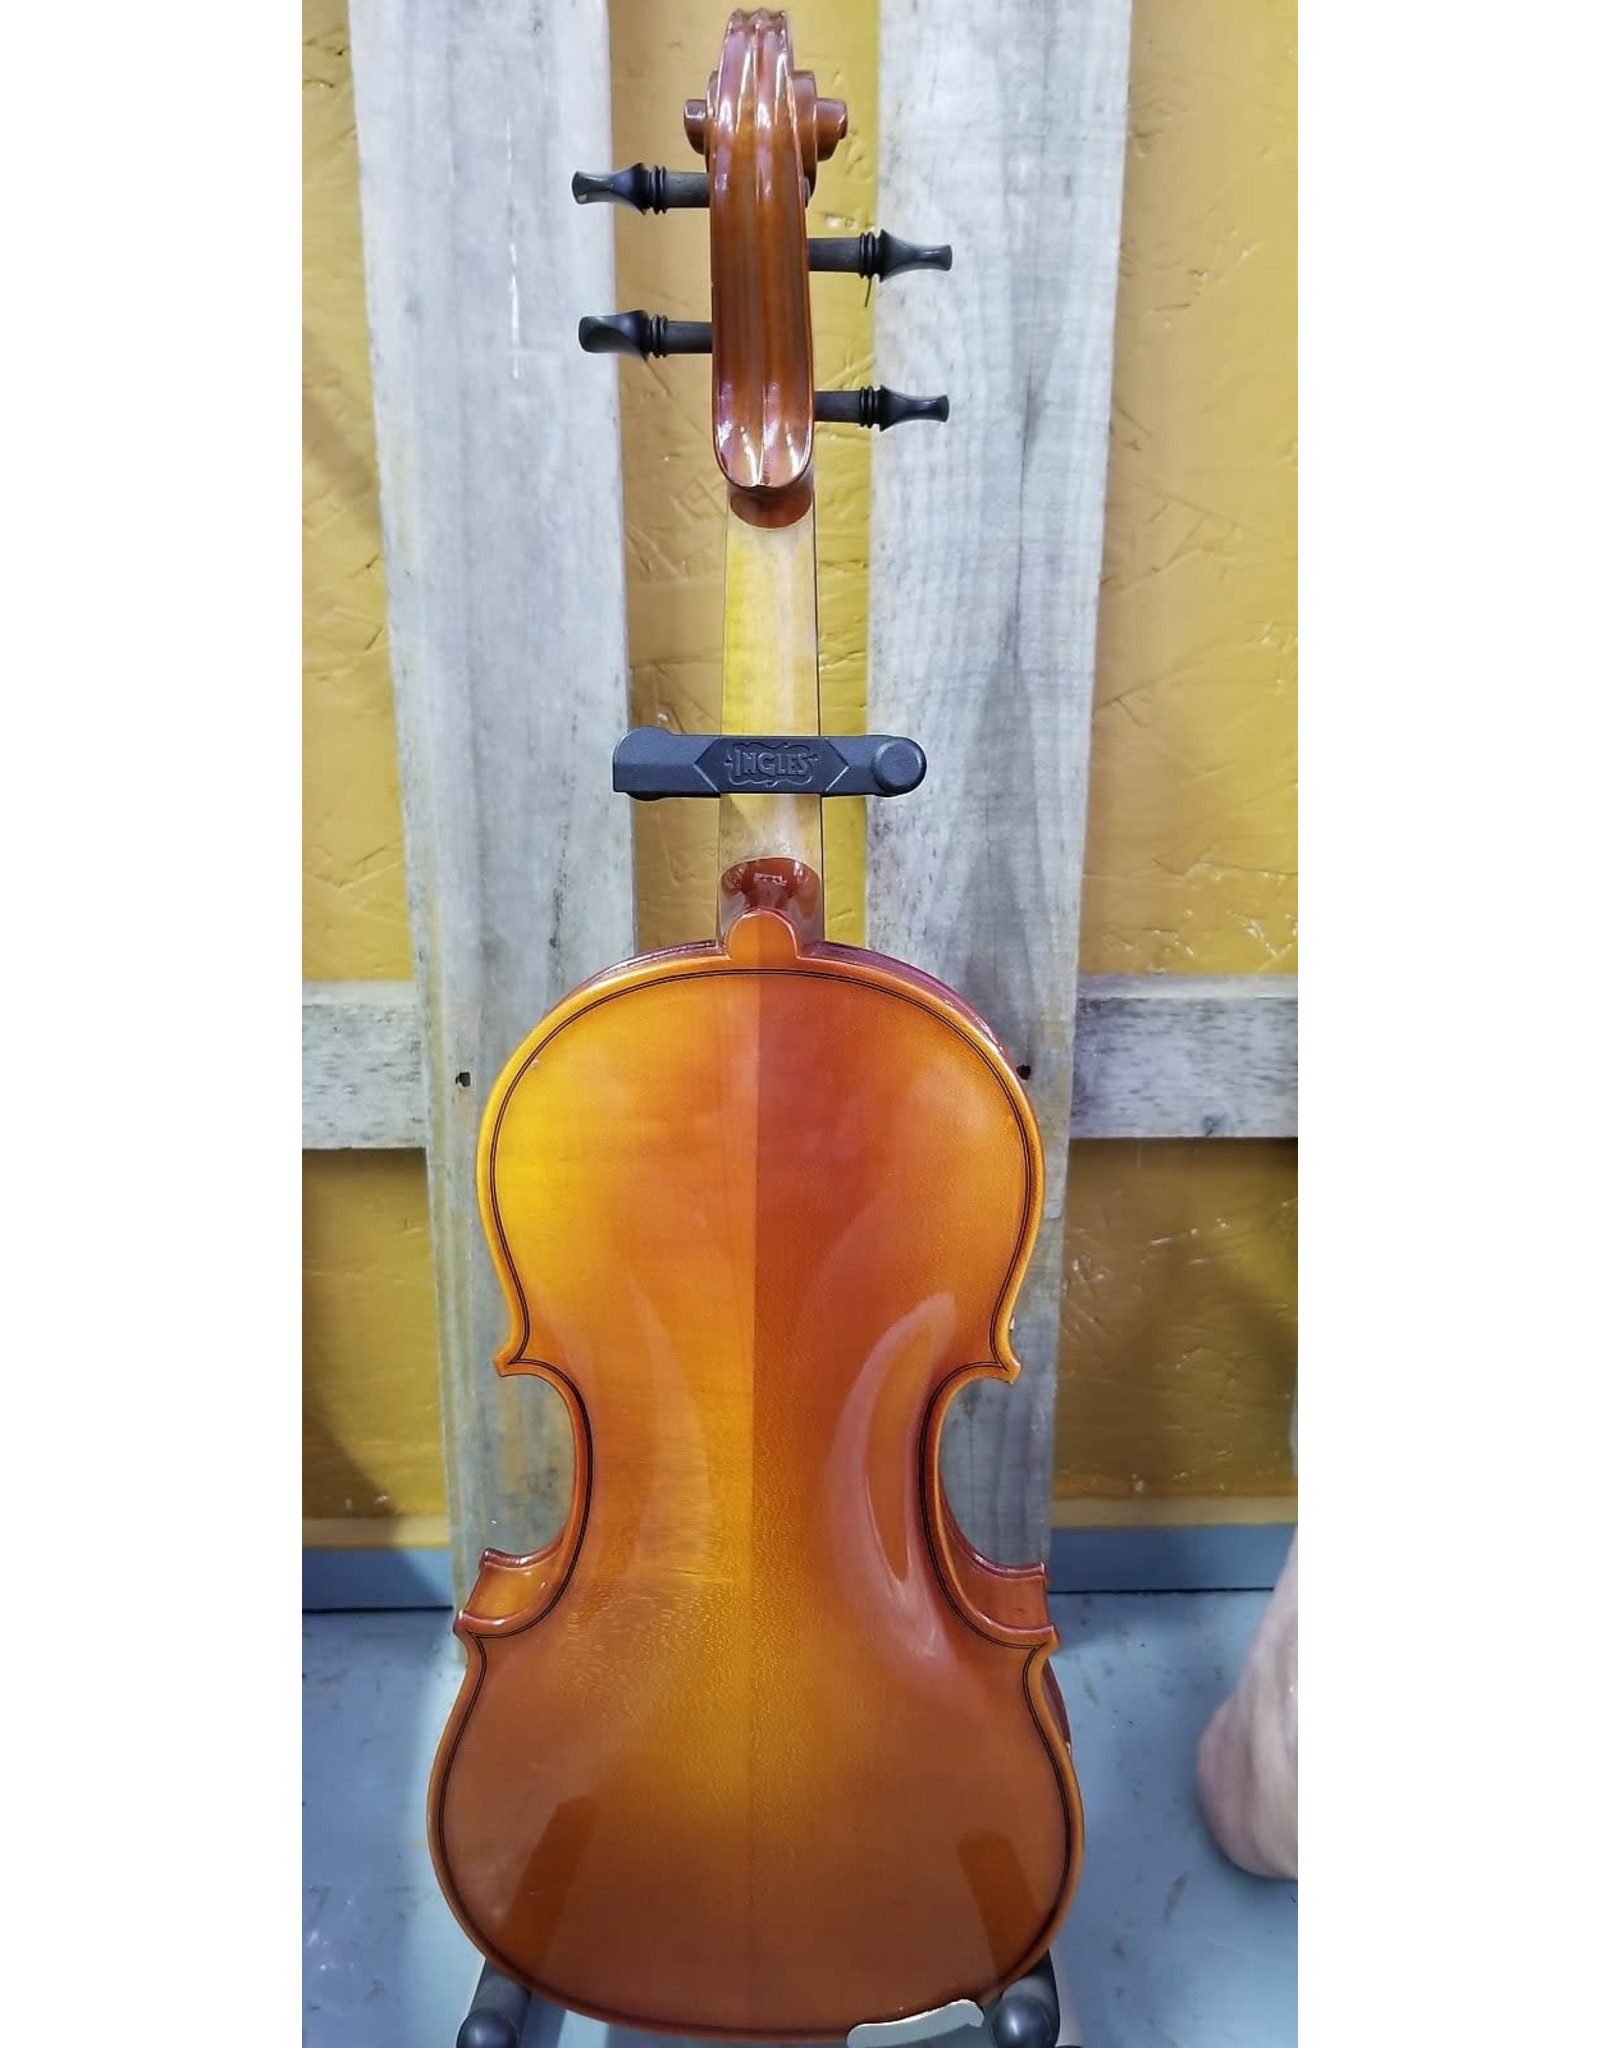 Knilling Bacharst Knilling Bucharst 4KT 3/4 Violin (used)